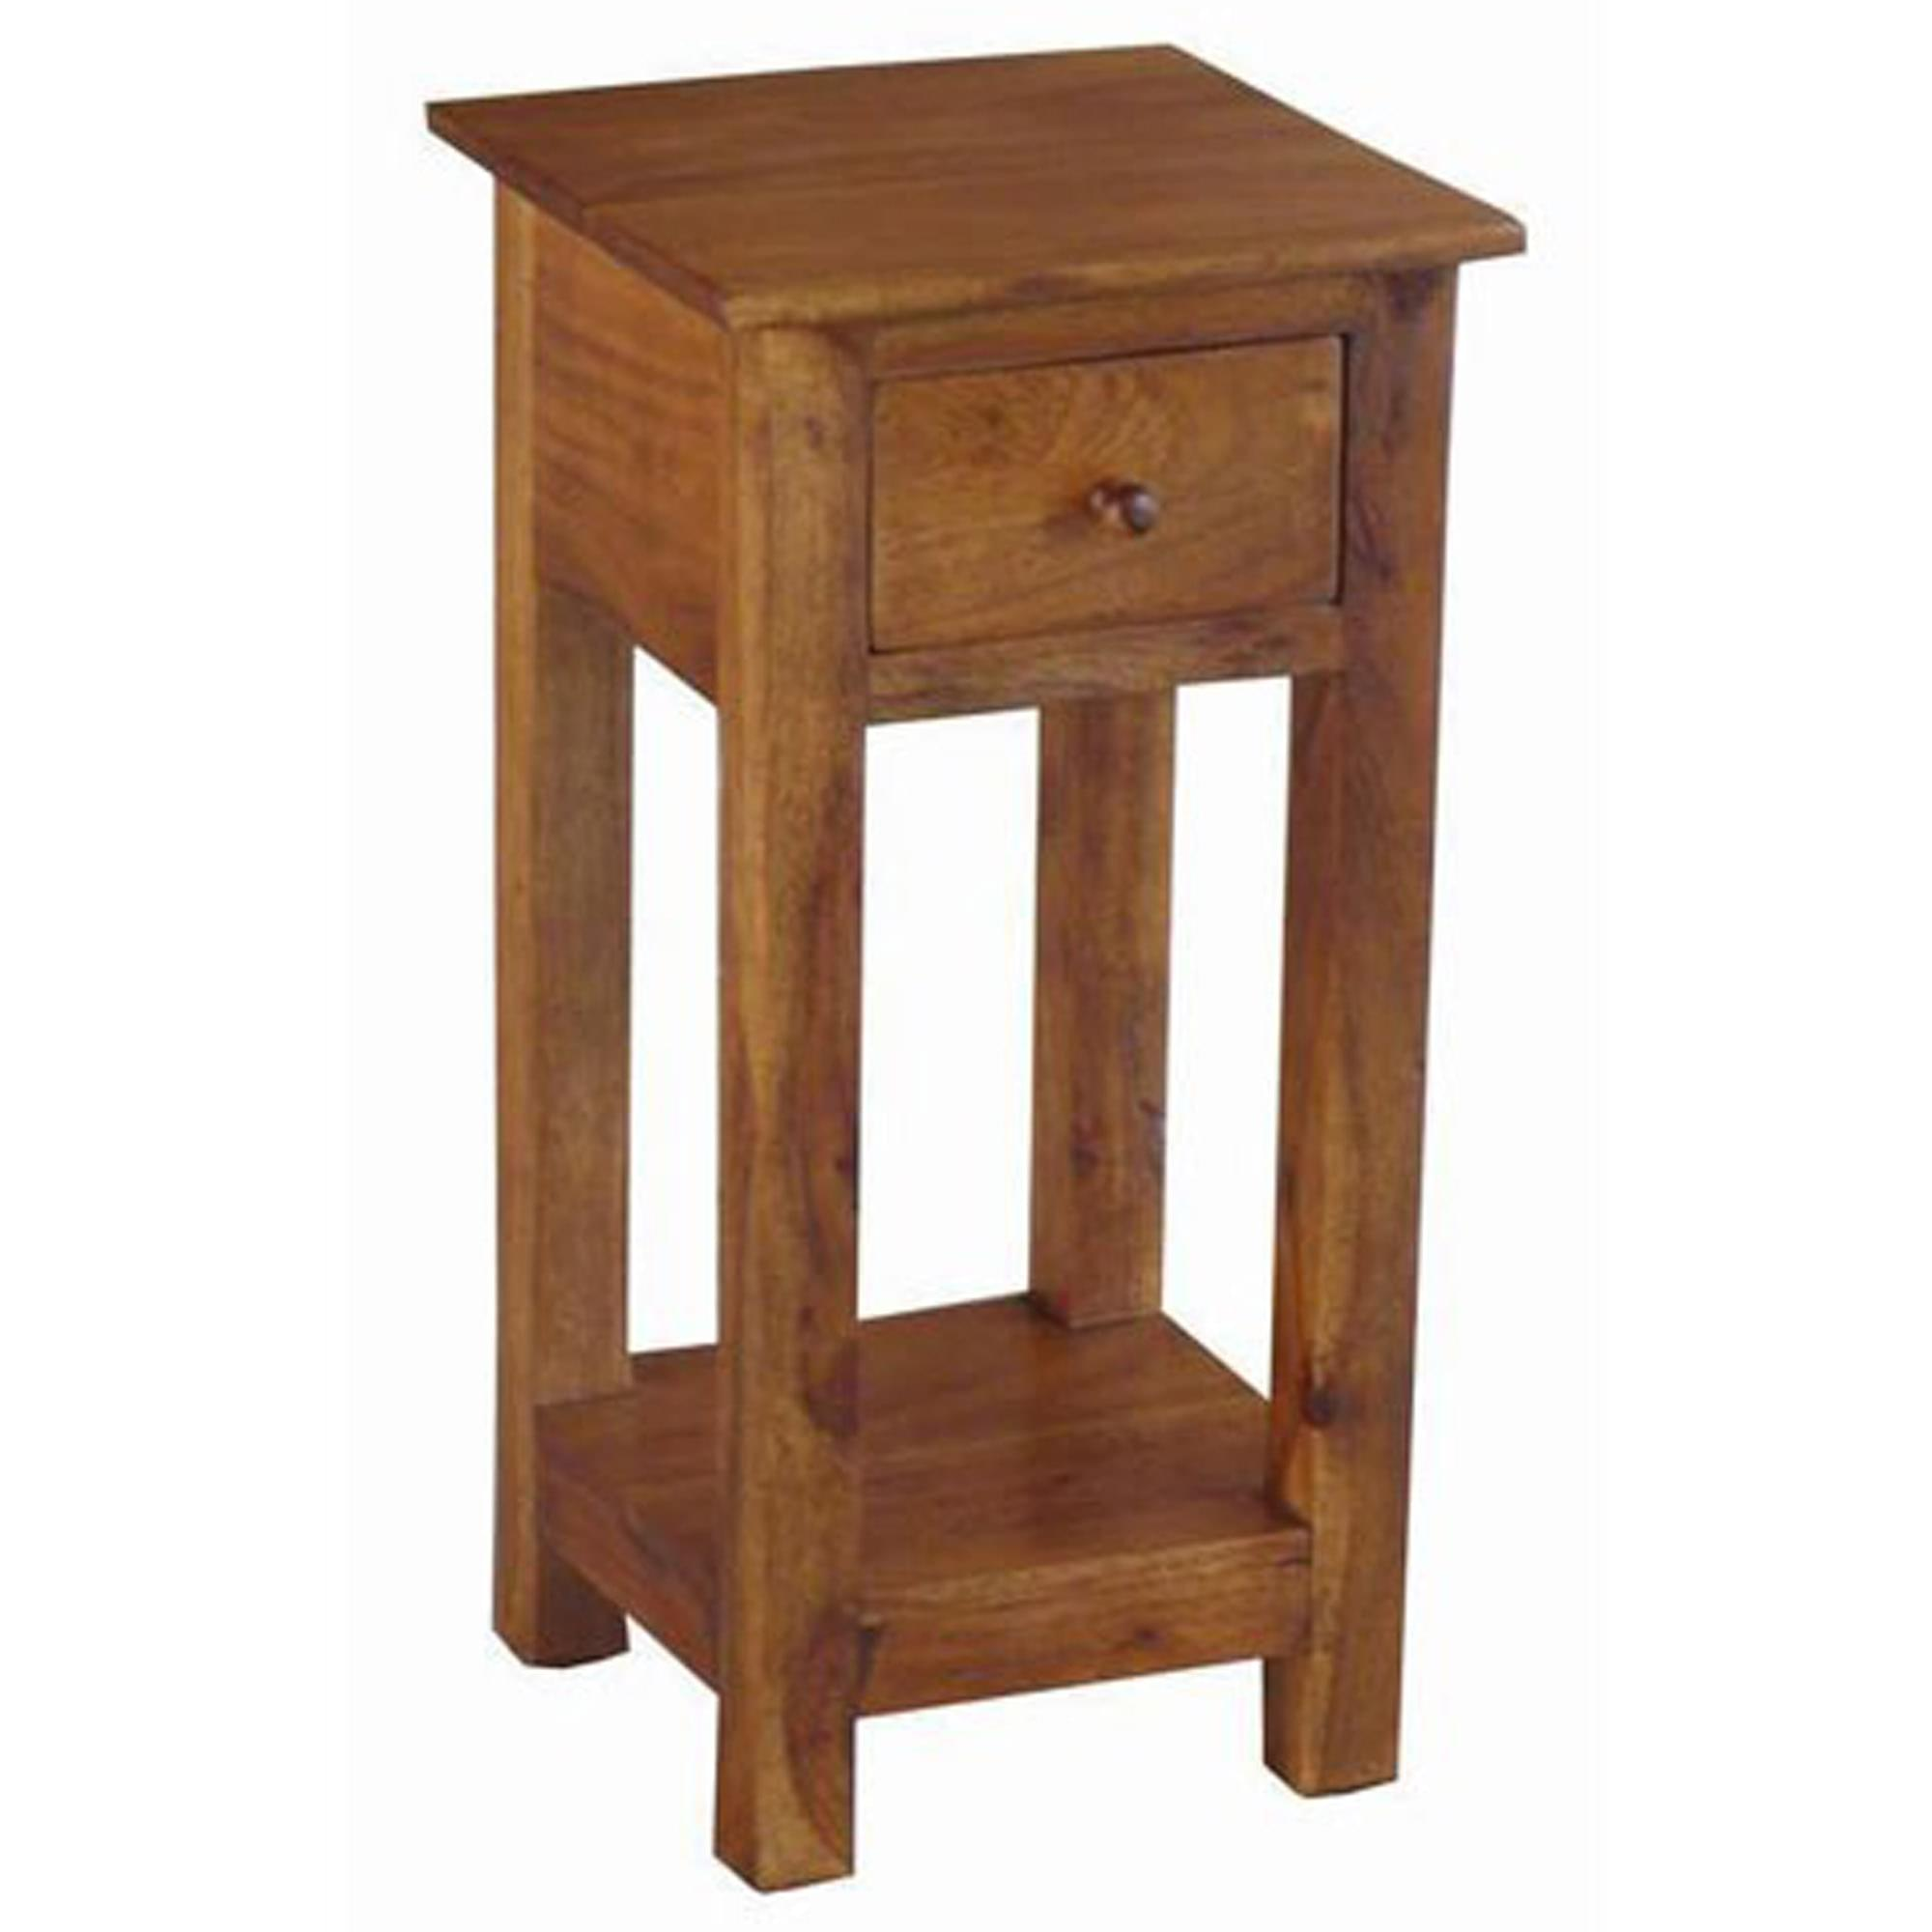 Acacia Wood Tall Thin Side Table Wooden Furniture Homesdirect365